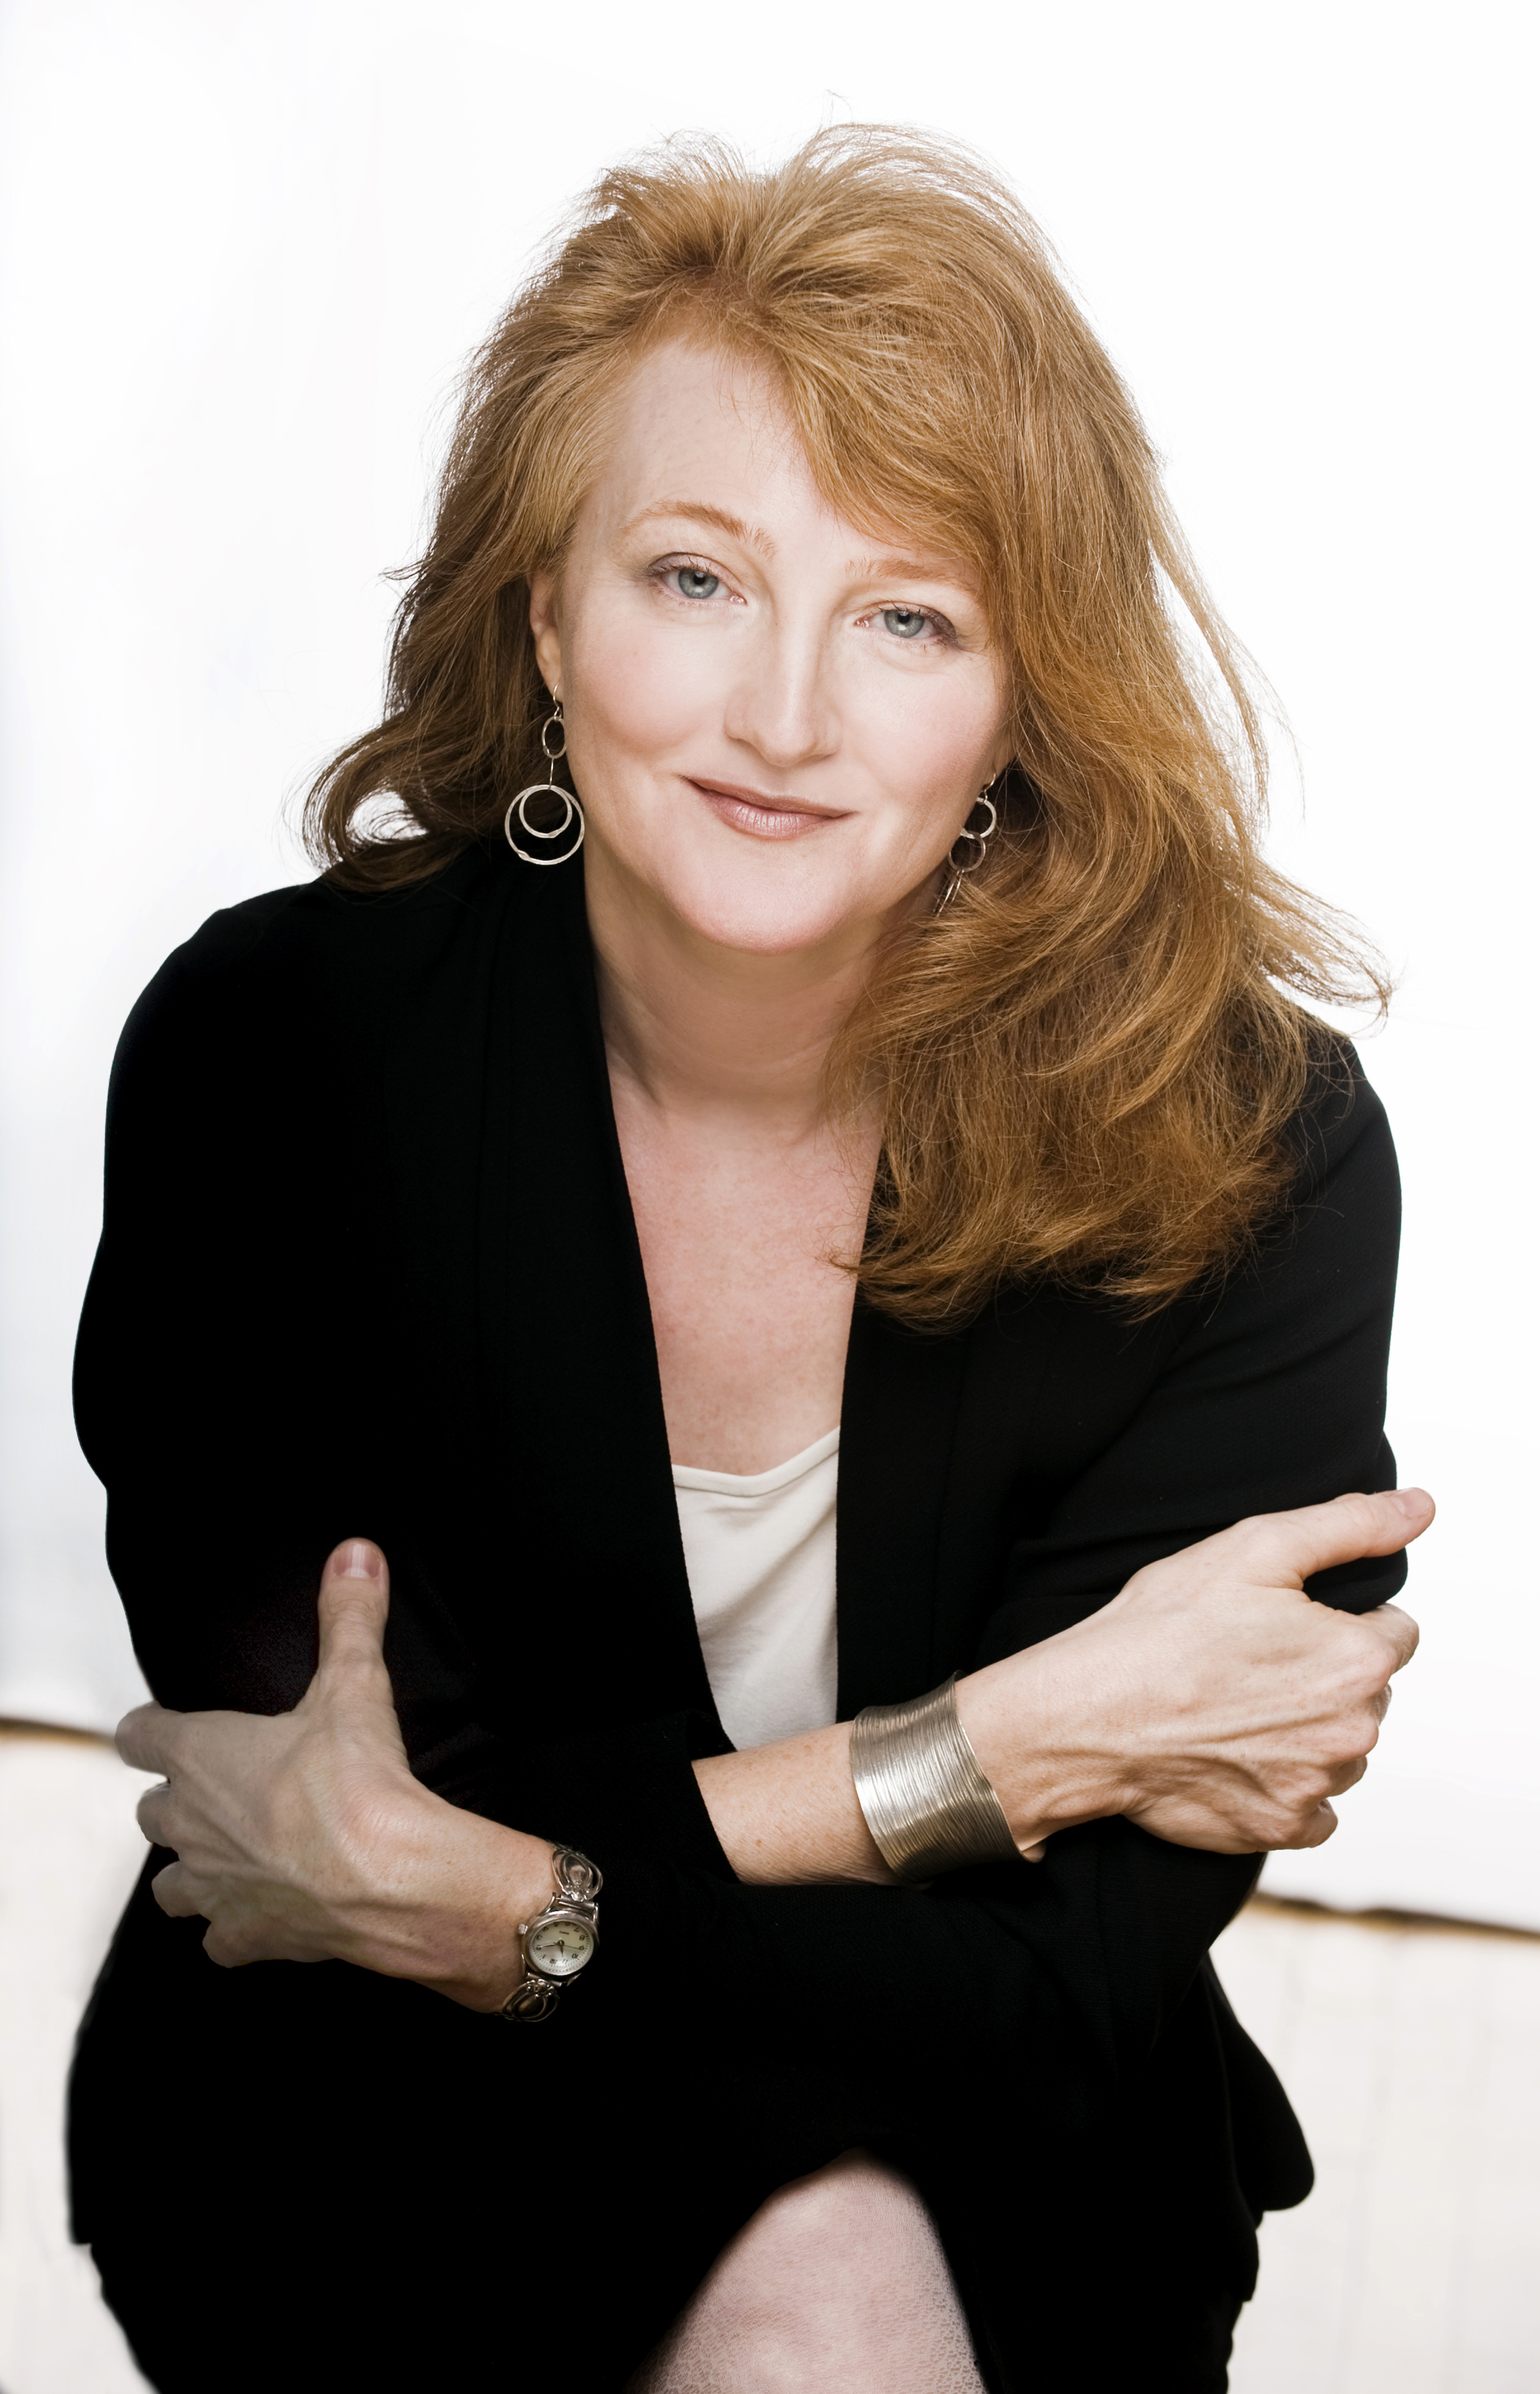 """Krista Tippett, creator and host of the public radio show """"On Being,"""" will be honored Monday with the 2013 National Humanities Medal. (Photo: Business Wire)"""